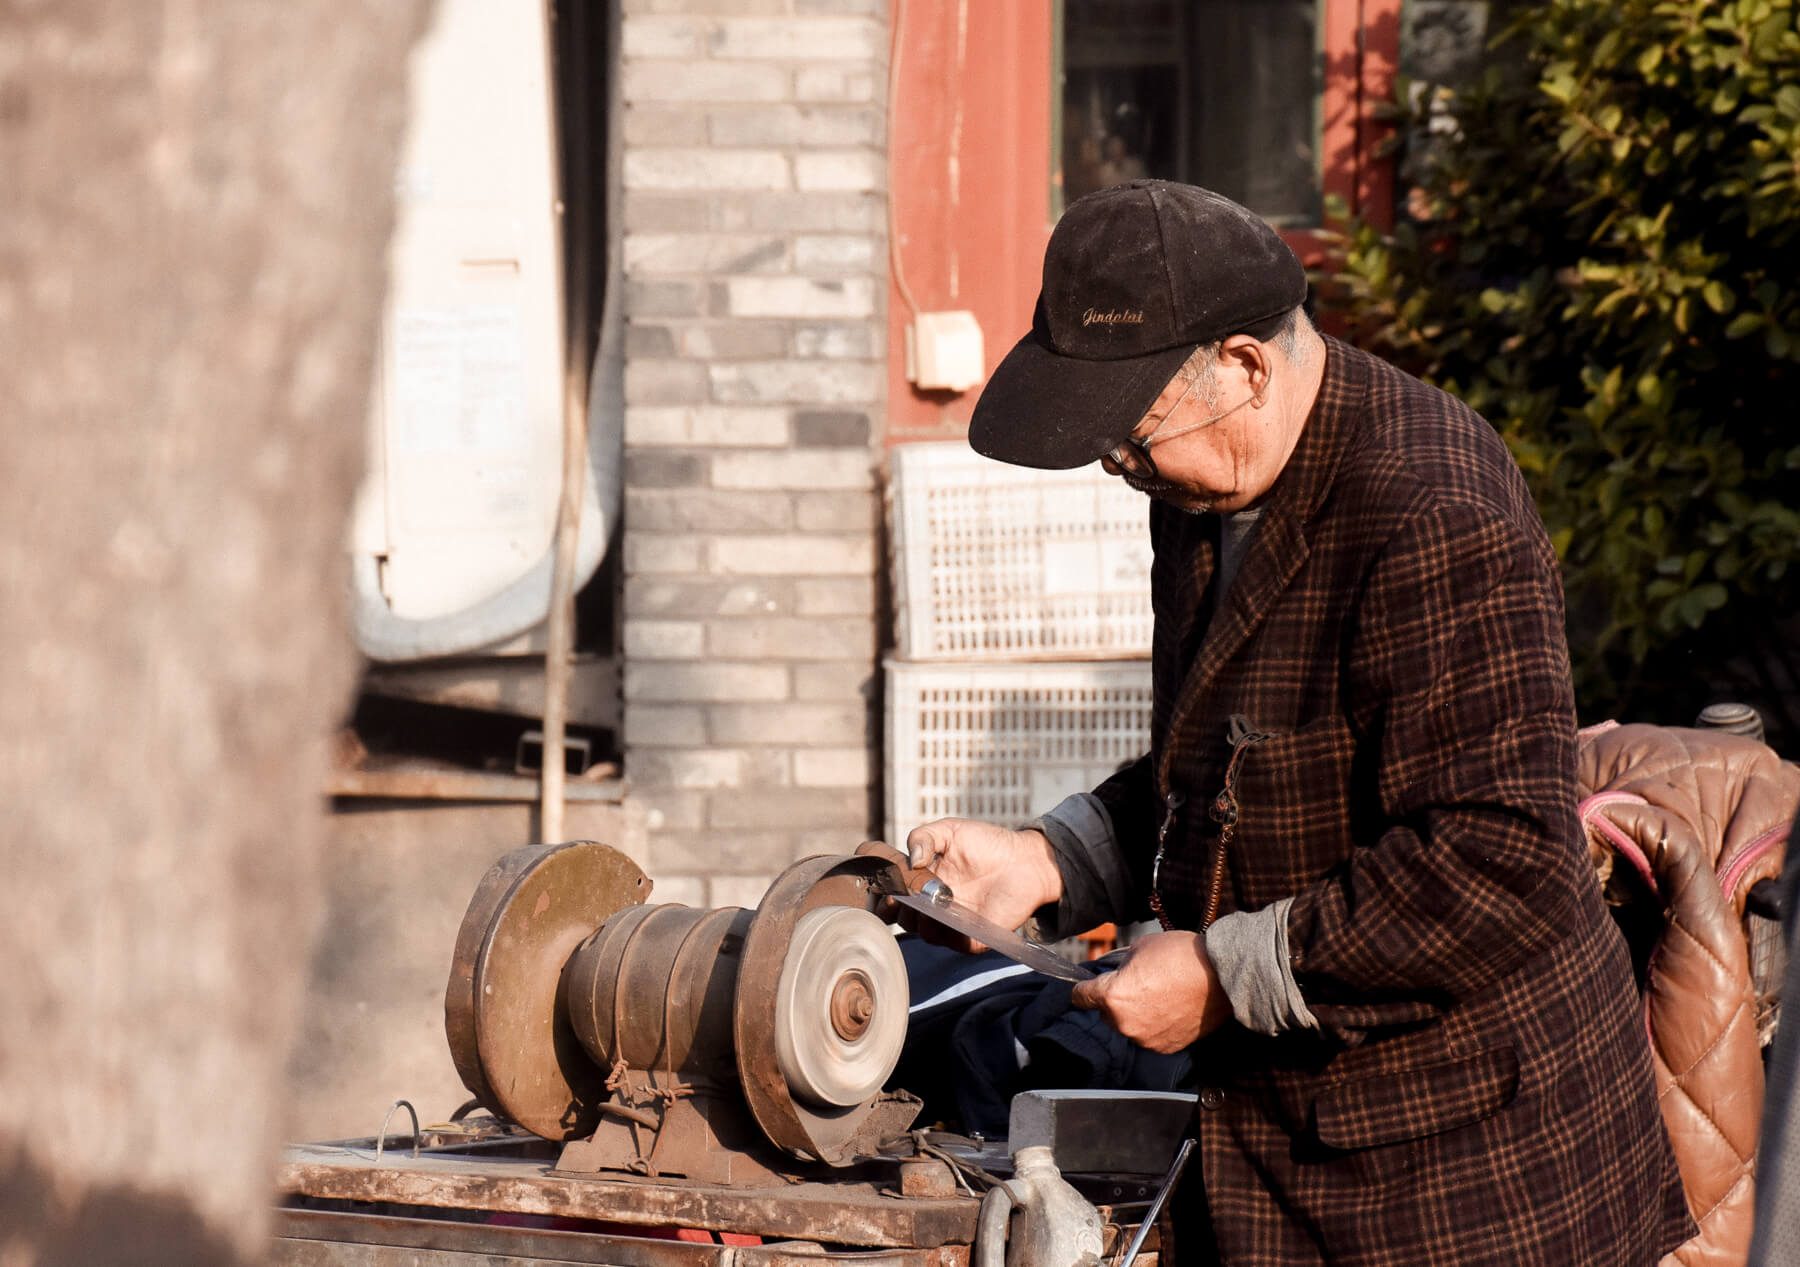 A man carving a knife on the street with an old machine in Beijing